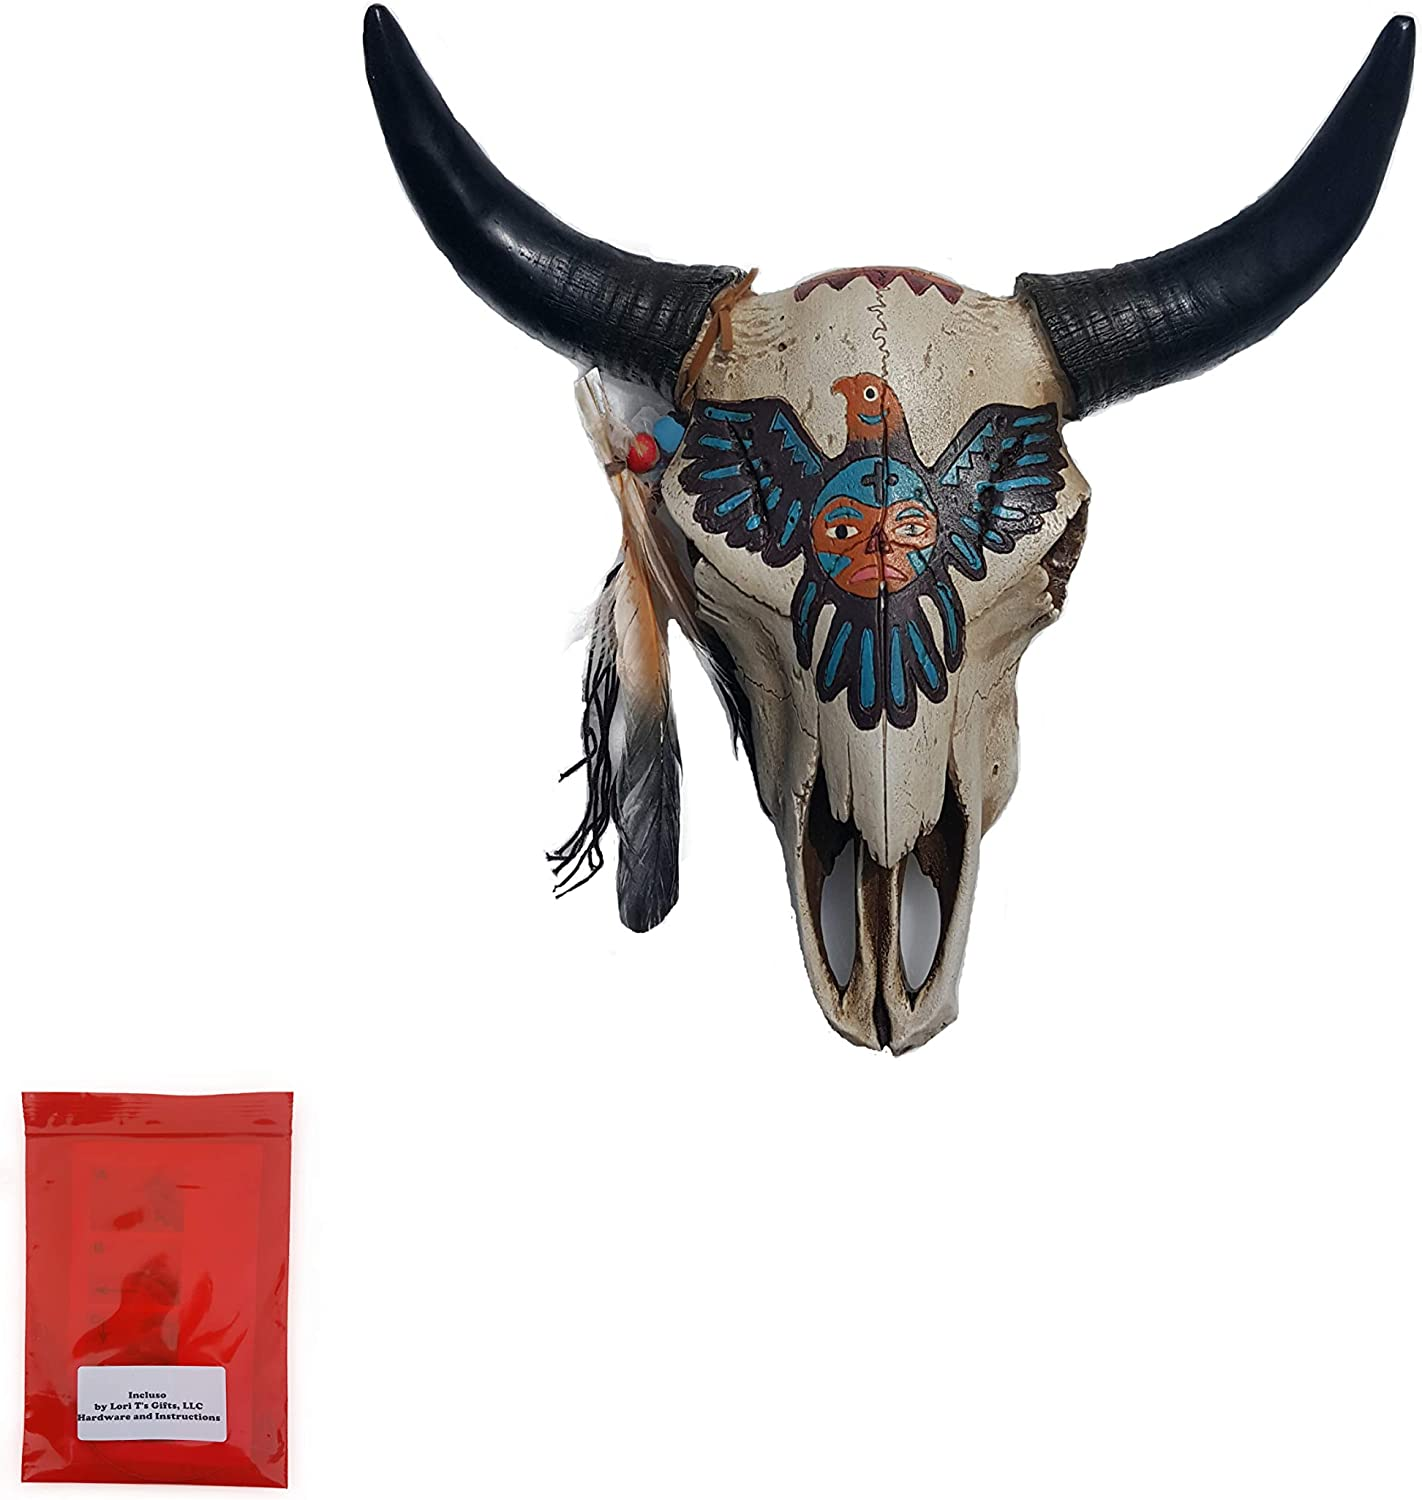 Cow Skull Tribal Design Wall Hanging Decor 3D with Horns with Painted Aztec Bird with Feather Taxidermy and Mounting Hardware Set for Home or Office Used Indoors or Outdoors